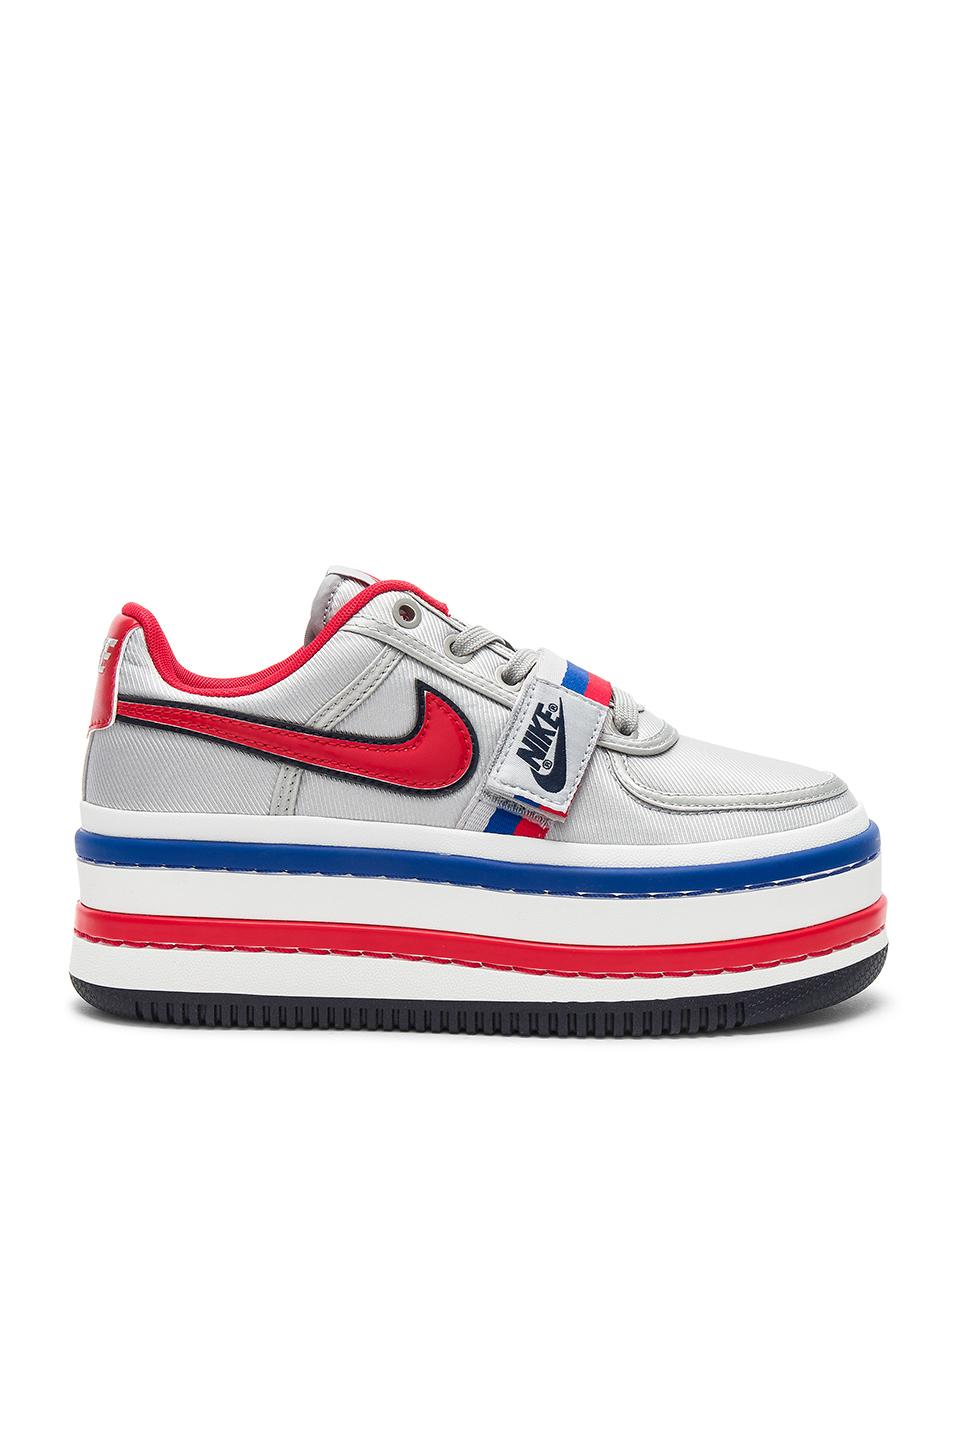 size 40 f9981 3b51b Nike Vandal 2K Faux Leather-Trimmed Metallic Faille Platform Sneakers In Red